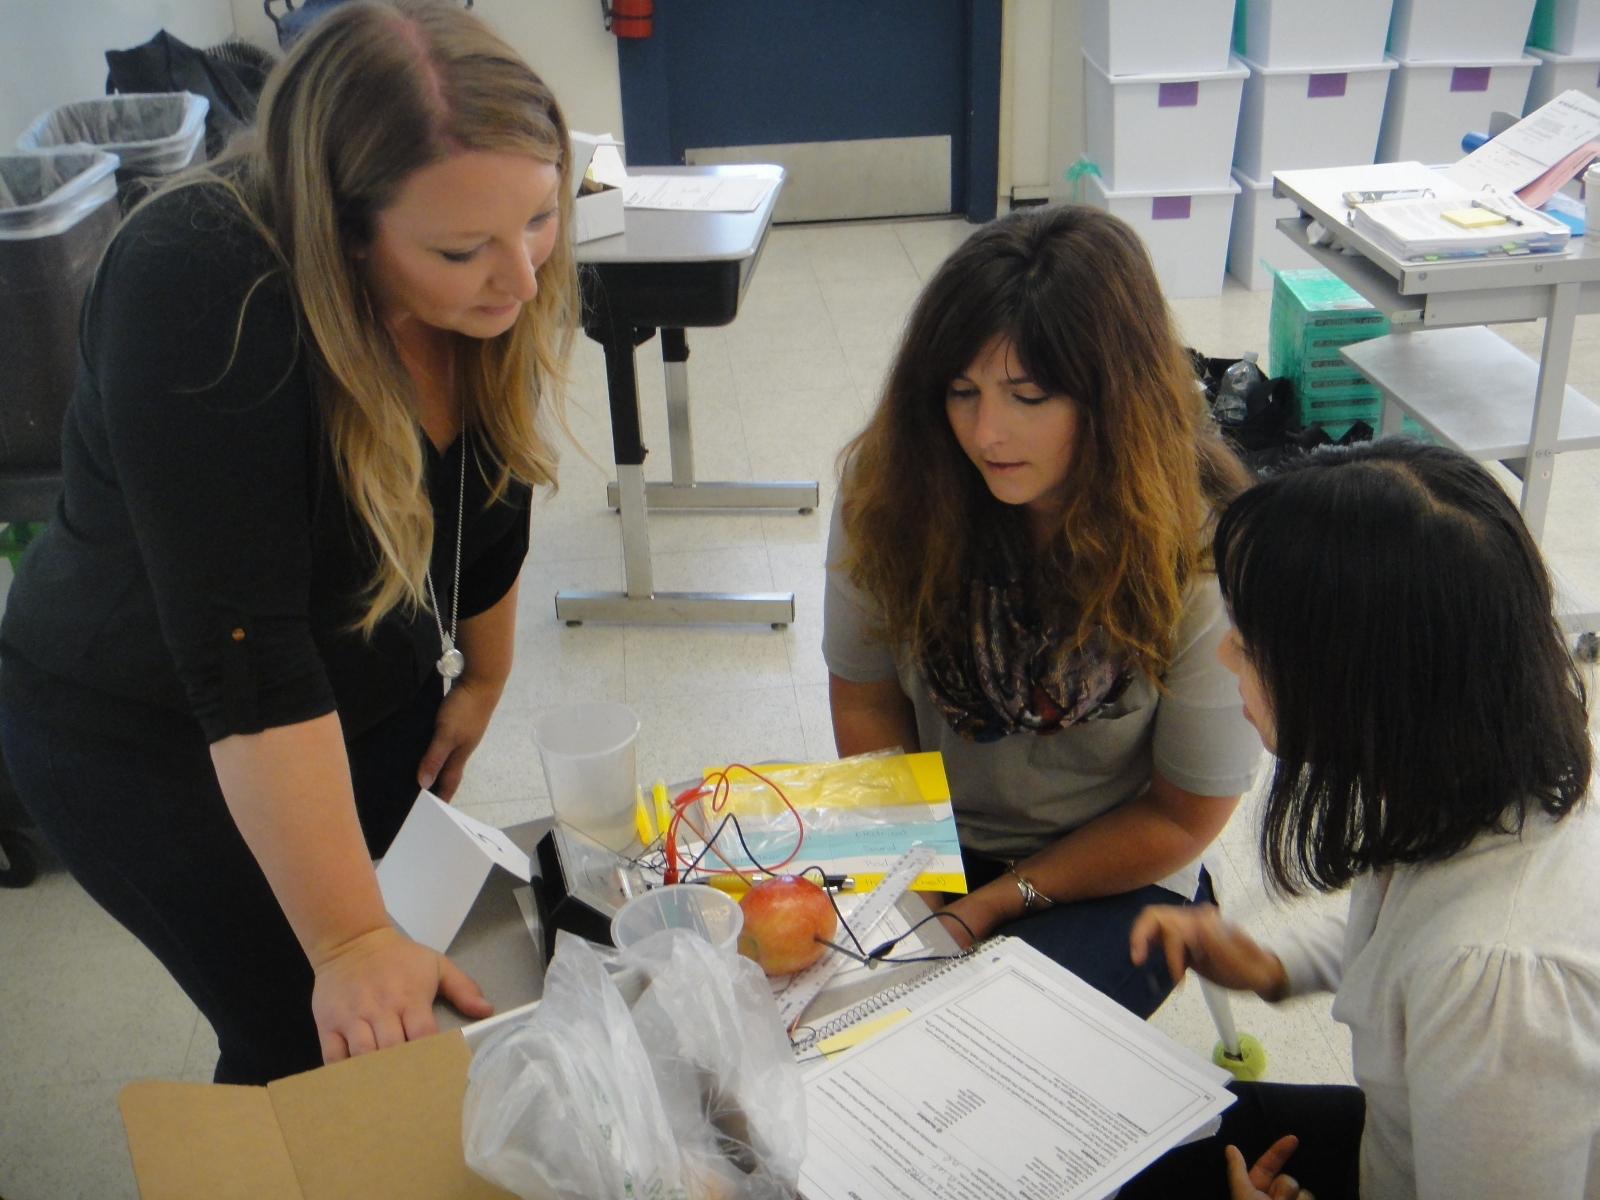 OpTerra STEM Educator Alison Smith works with SSFUSD teachers during the first week of the District's Summer STEM Institute. OpTerra has provided professional development training and hands-on energy curriculum tied to STEM for teachers throughout grade levels.